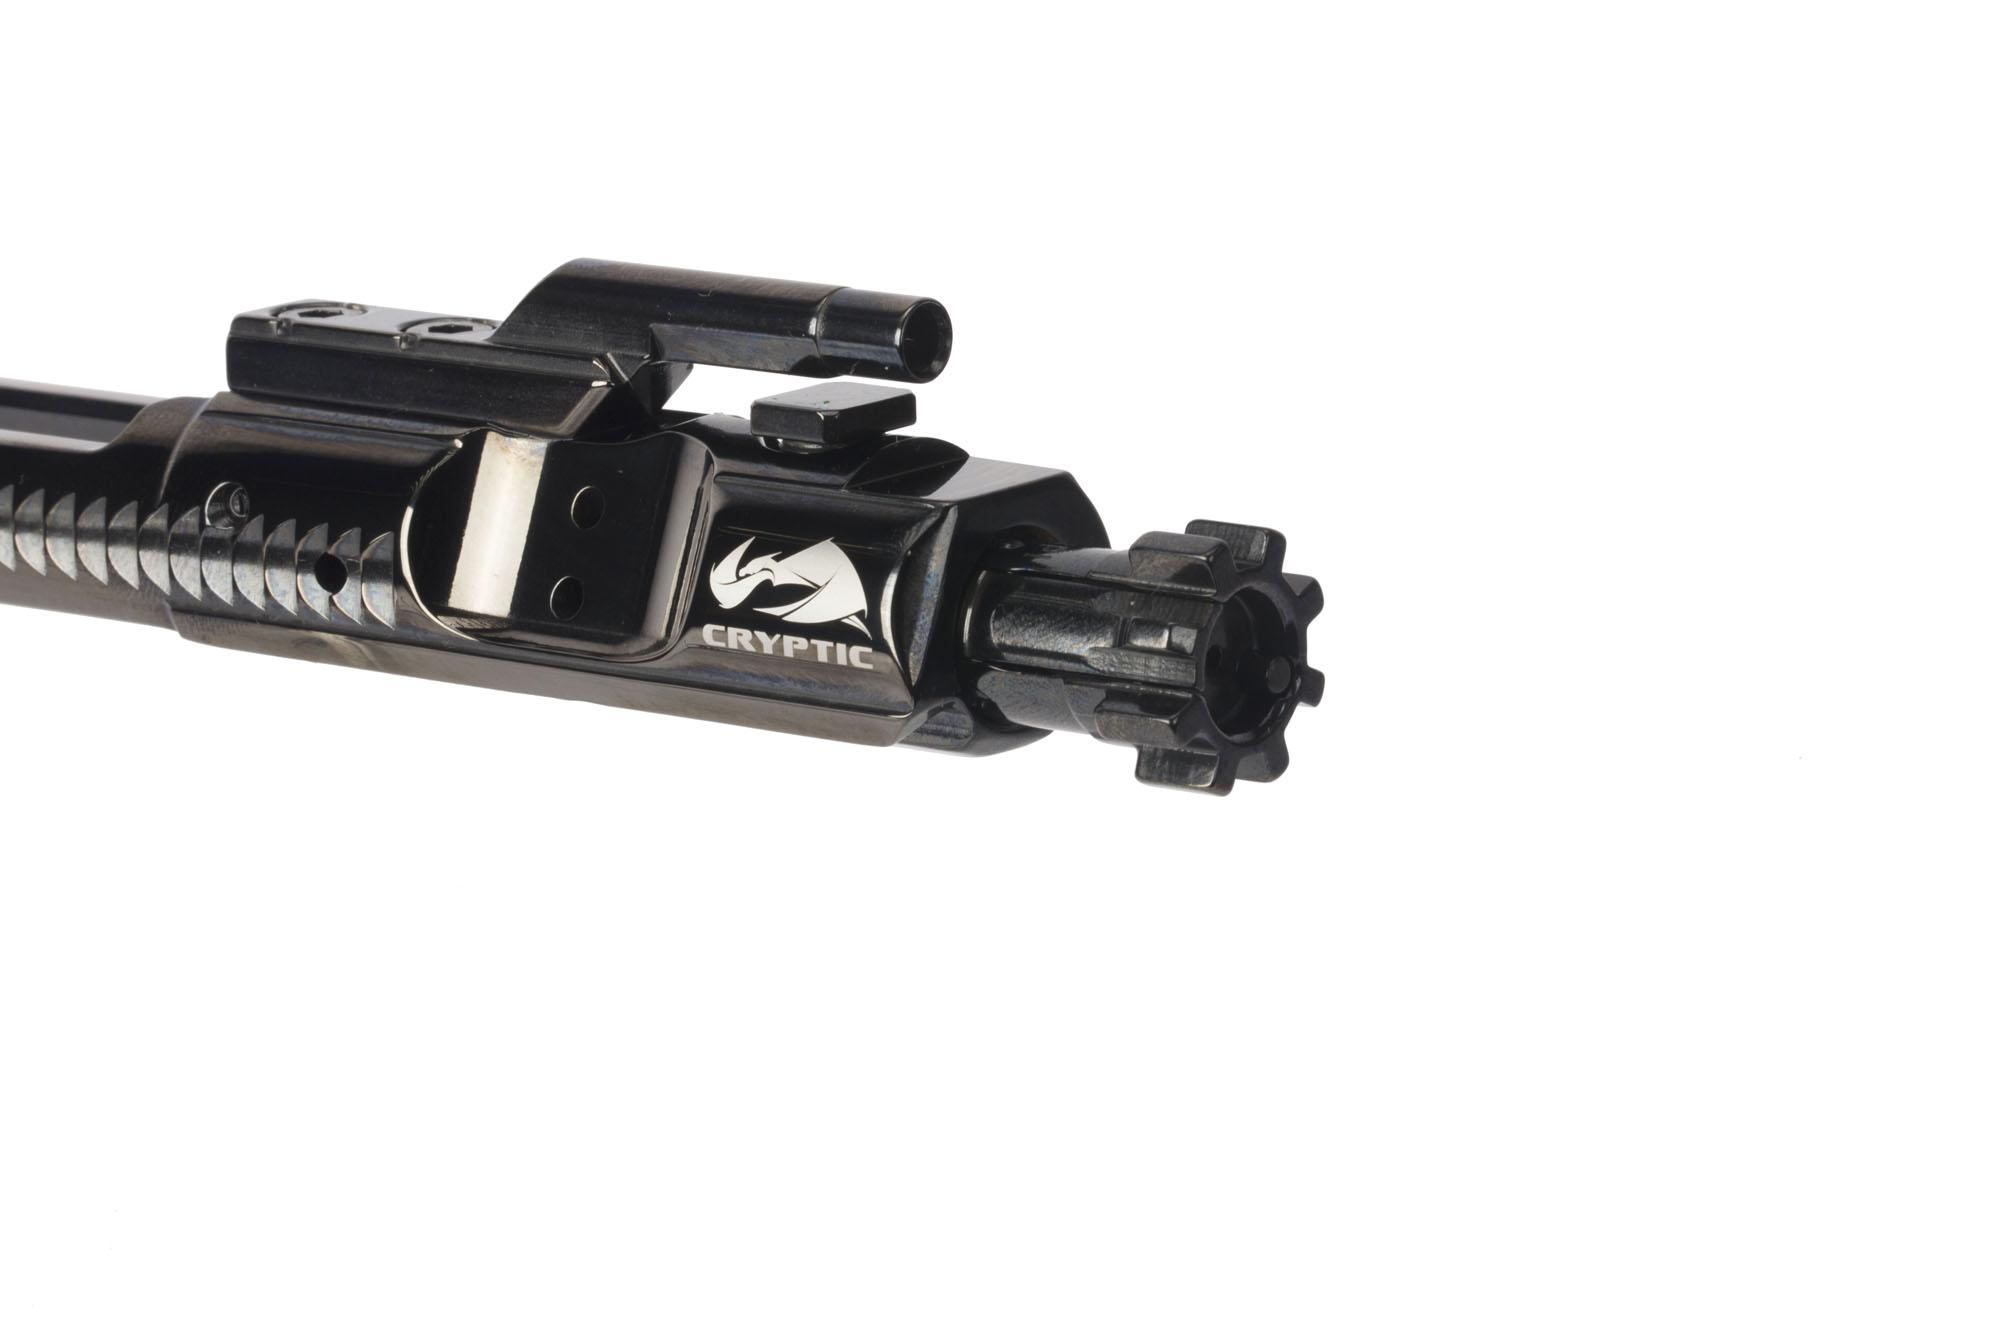 Cryptic Coatings Mystic Black AR-15 bolt carrier group uses a standard 5.56 NATO magnetic particle inspected bolt assembly